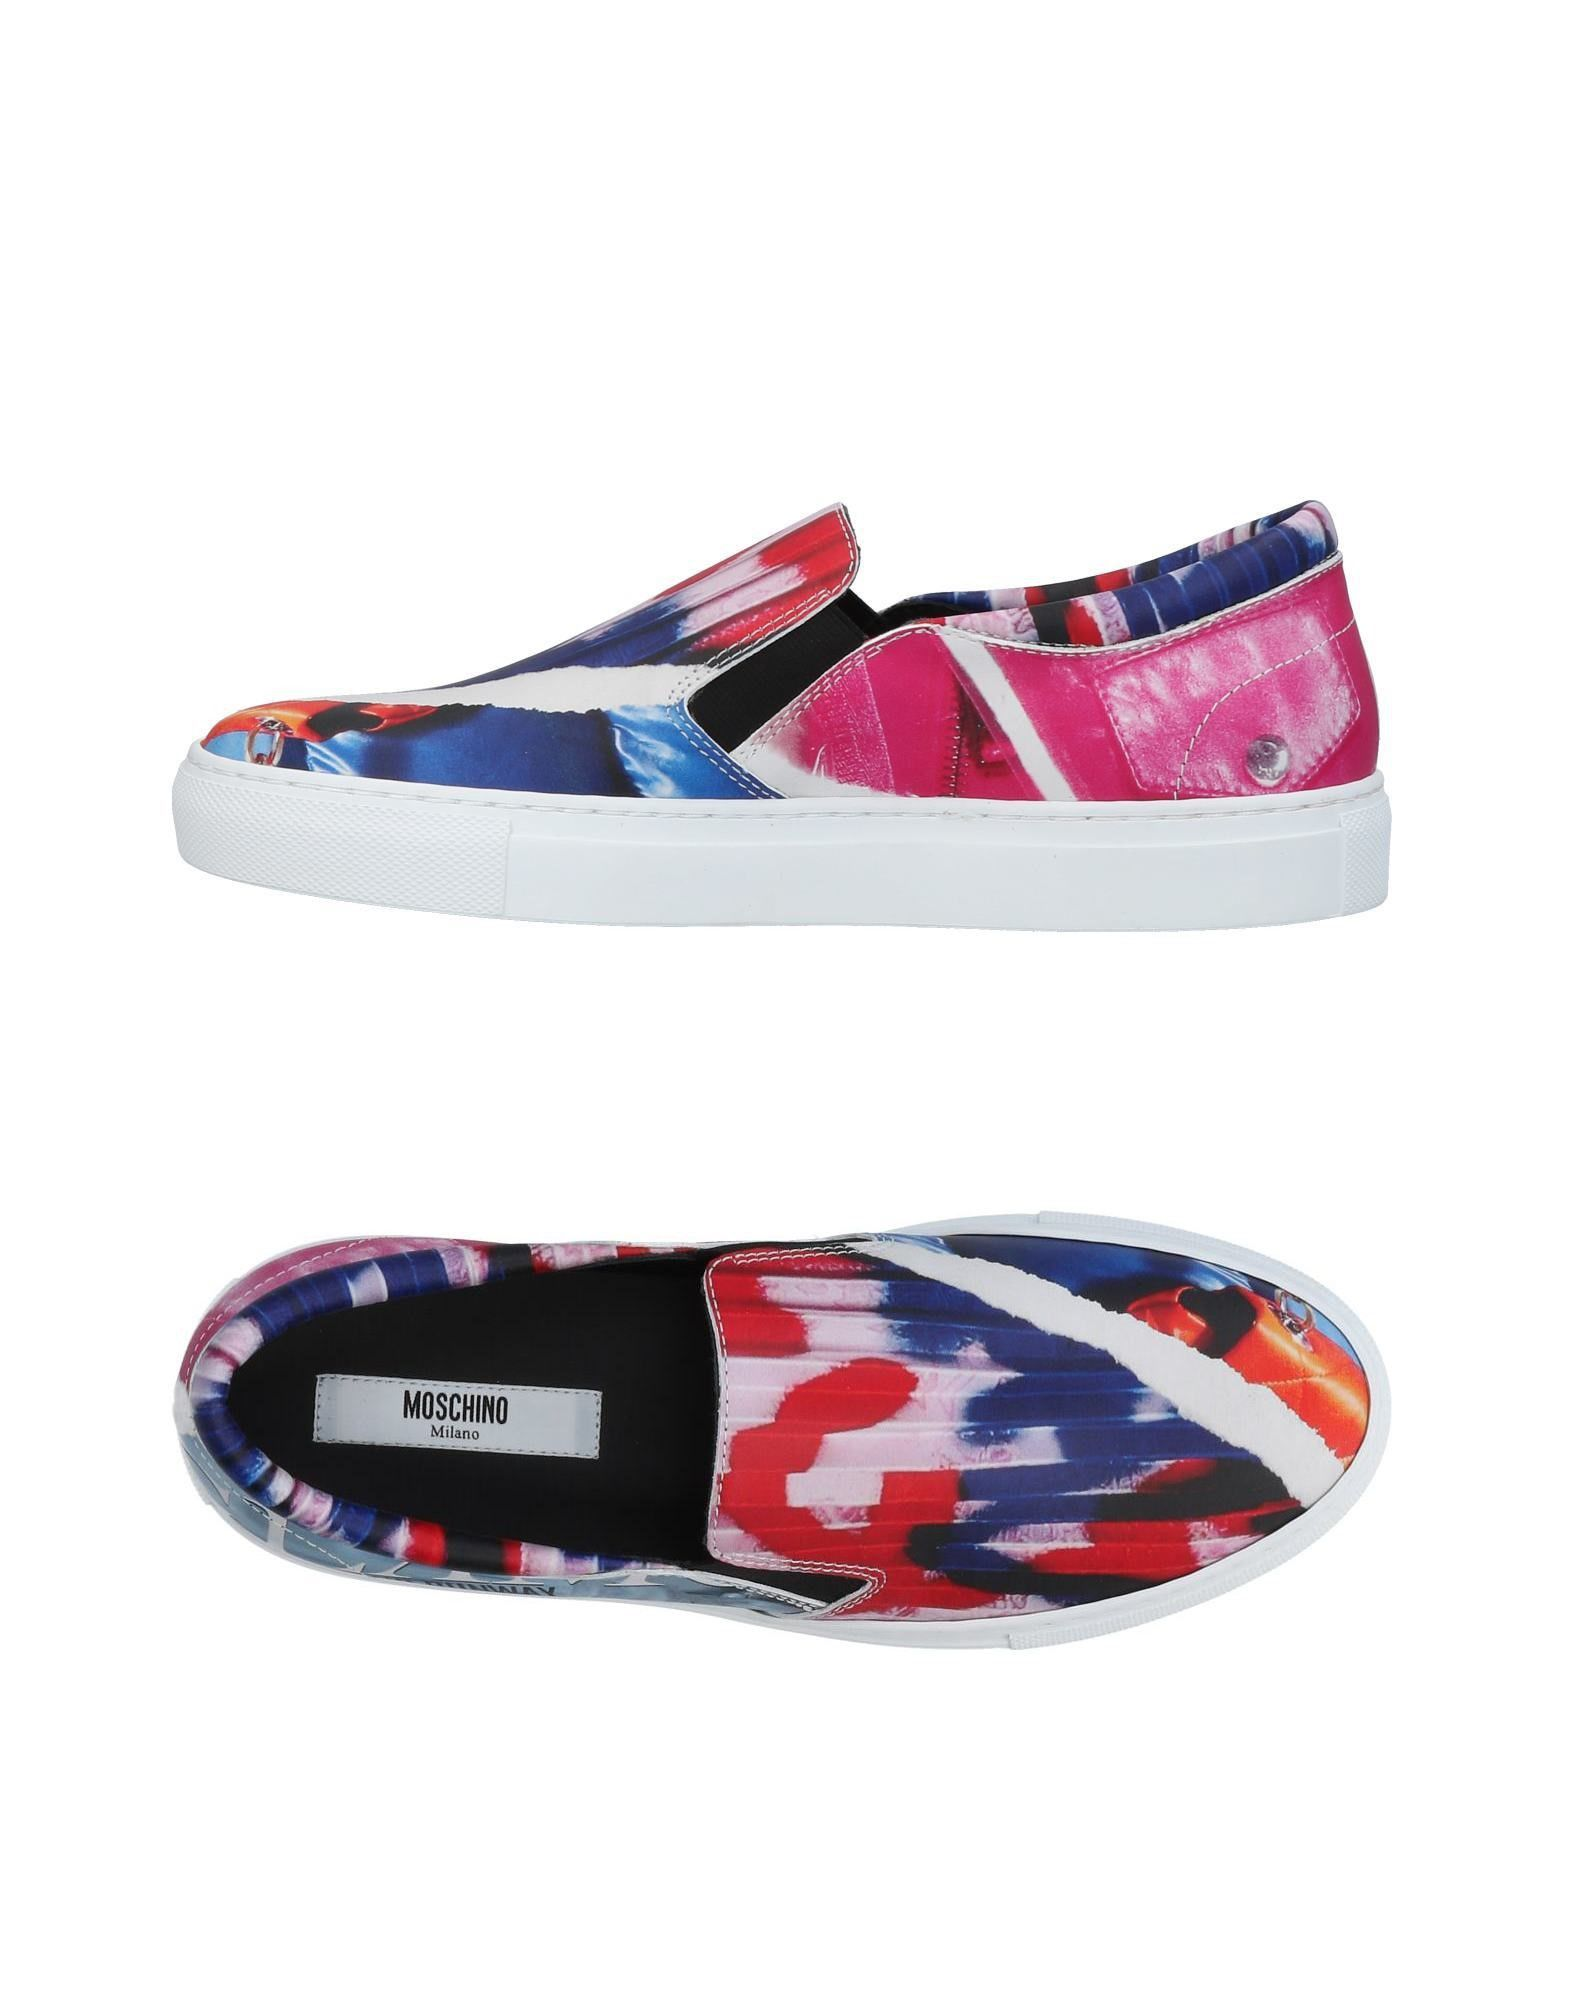 Stilvolle billige Schuhe Moschino Sneakers Damen  11452795SR